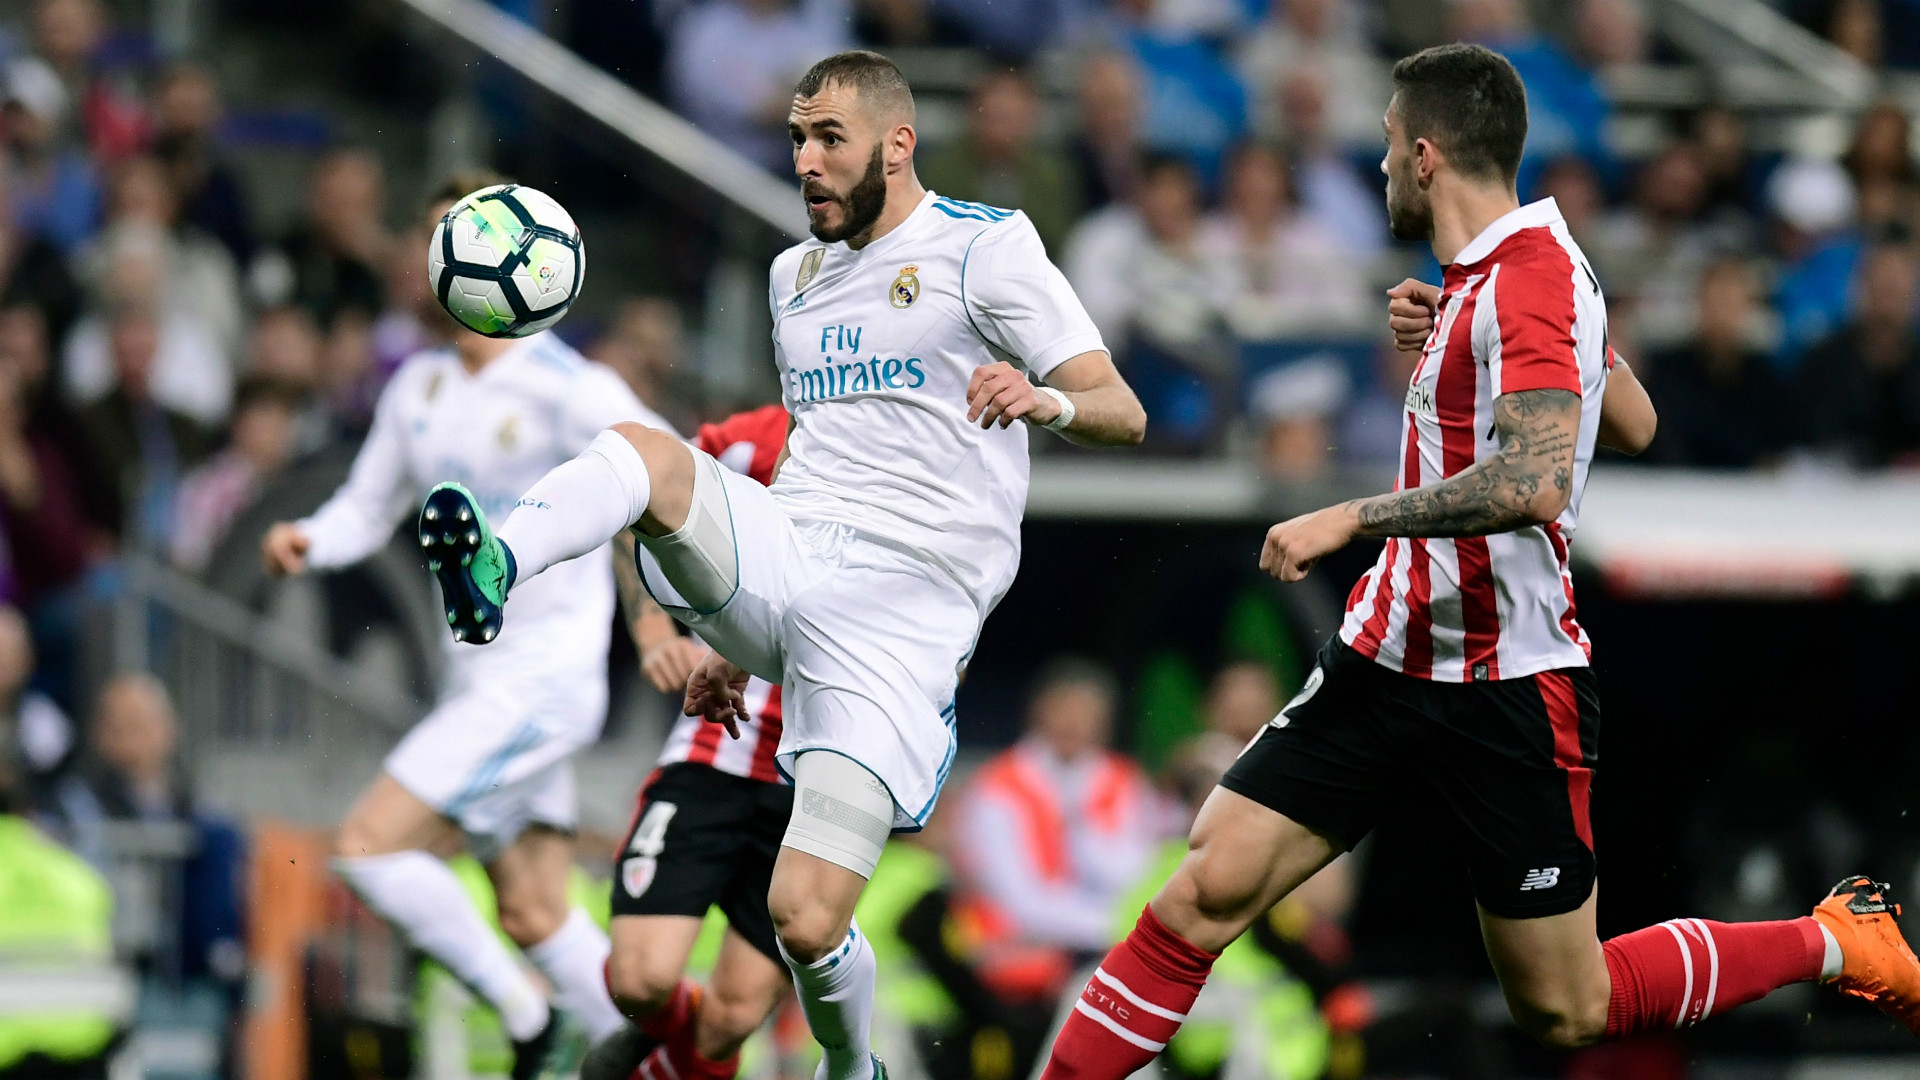 Real Madrid empató en casa ante el Athletic de Bilbao